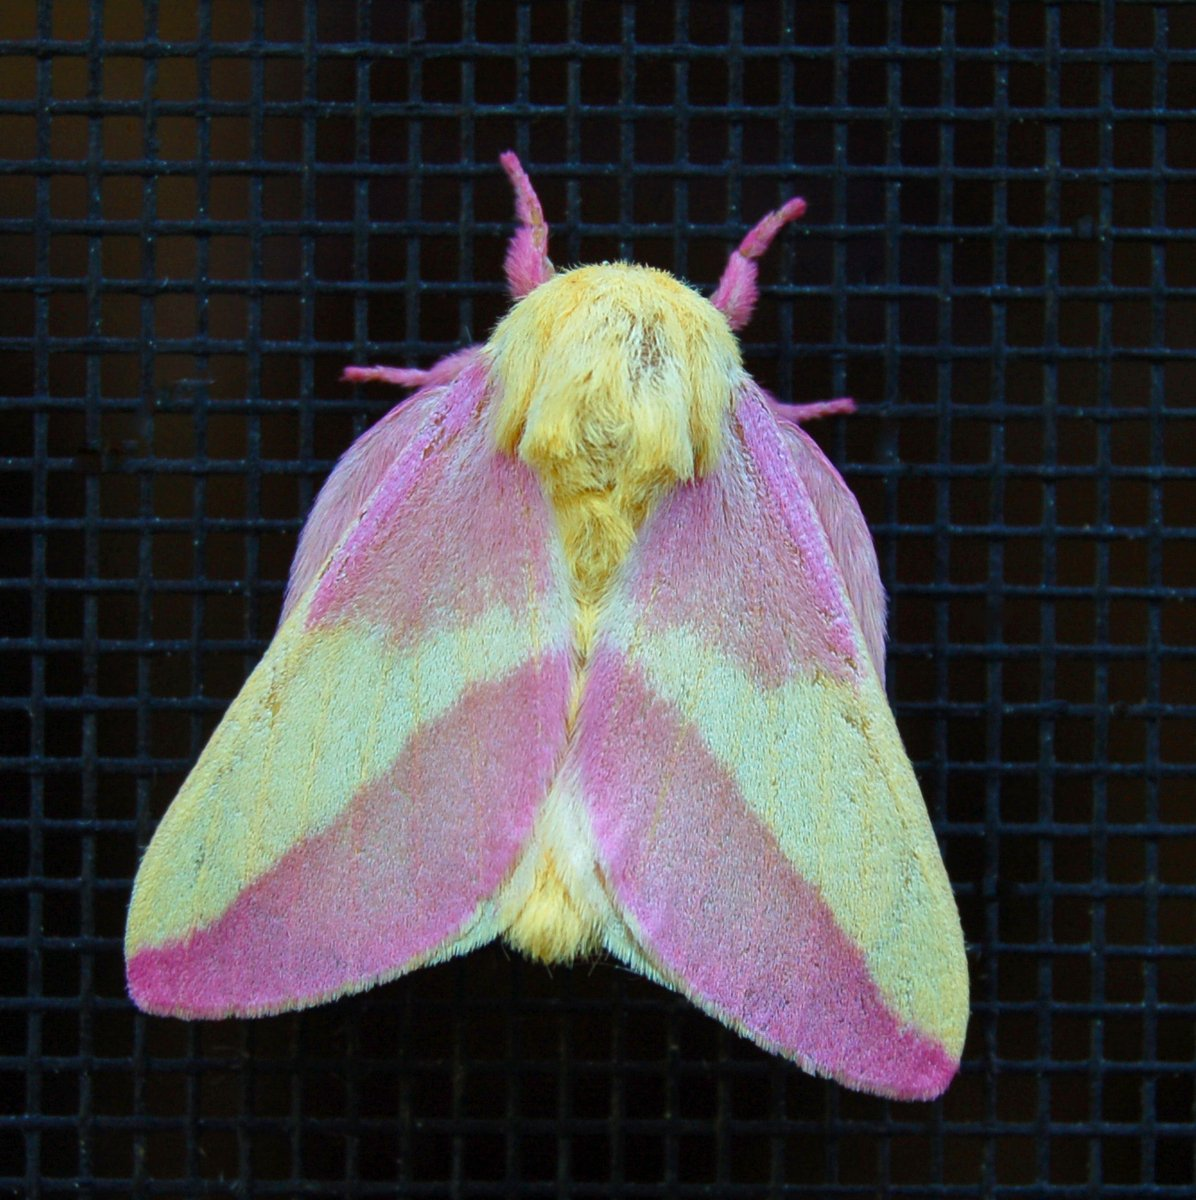 Free Rosy Maple Moth Stock Photo - FreeImages.com - photo#14